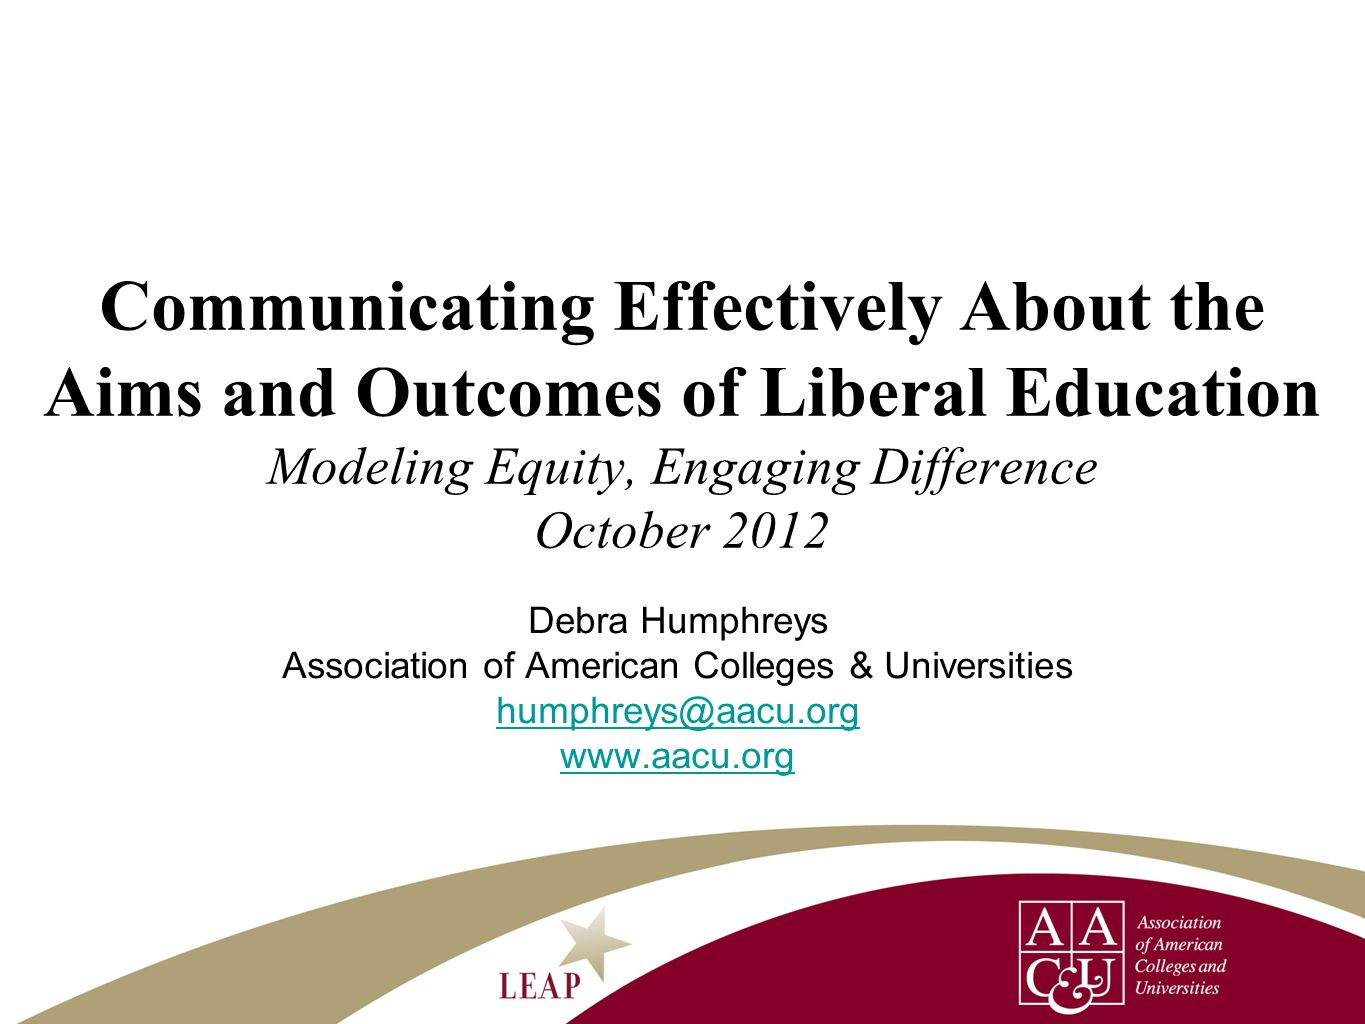 Debra Humphreys Association of American Colleges & Universities humphreys@aacu.org www.aacu.org Communicating Effectively About the Aims and Outcomes